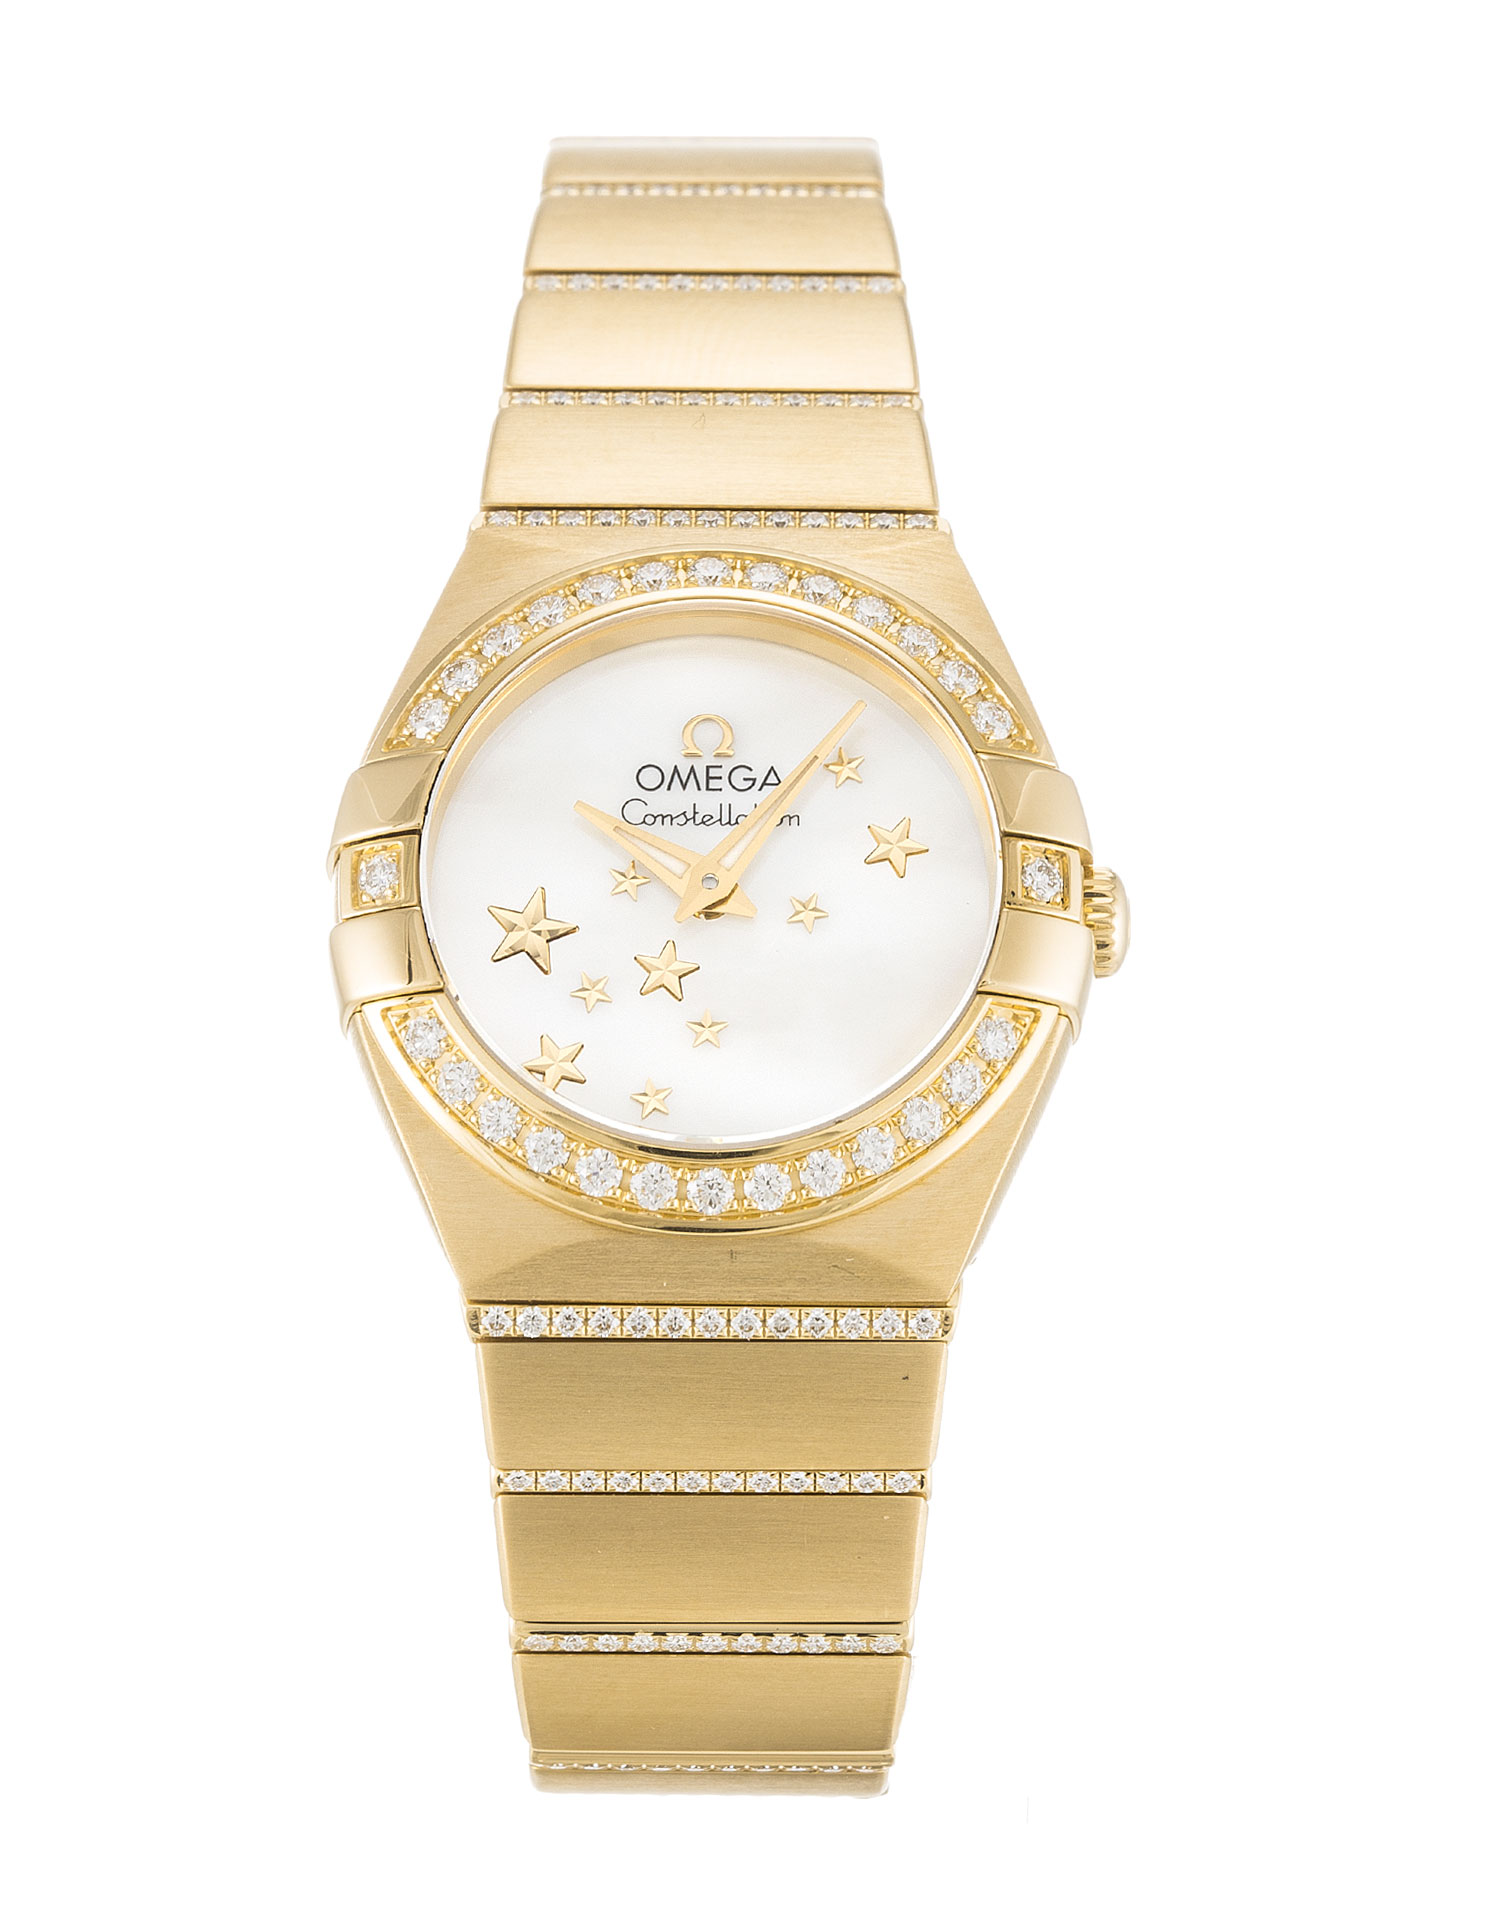 Omega Constellation 123.55.24.60.05.002 Ladies 24 Mm Yellow Gold Set With Diamonds Case Automatic Movement – iapac.to